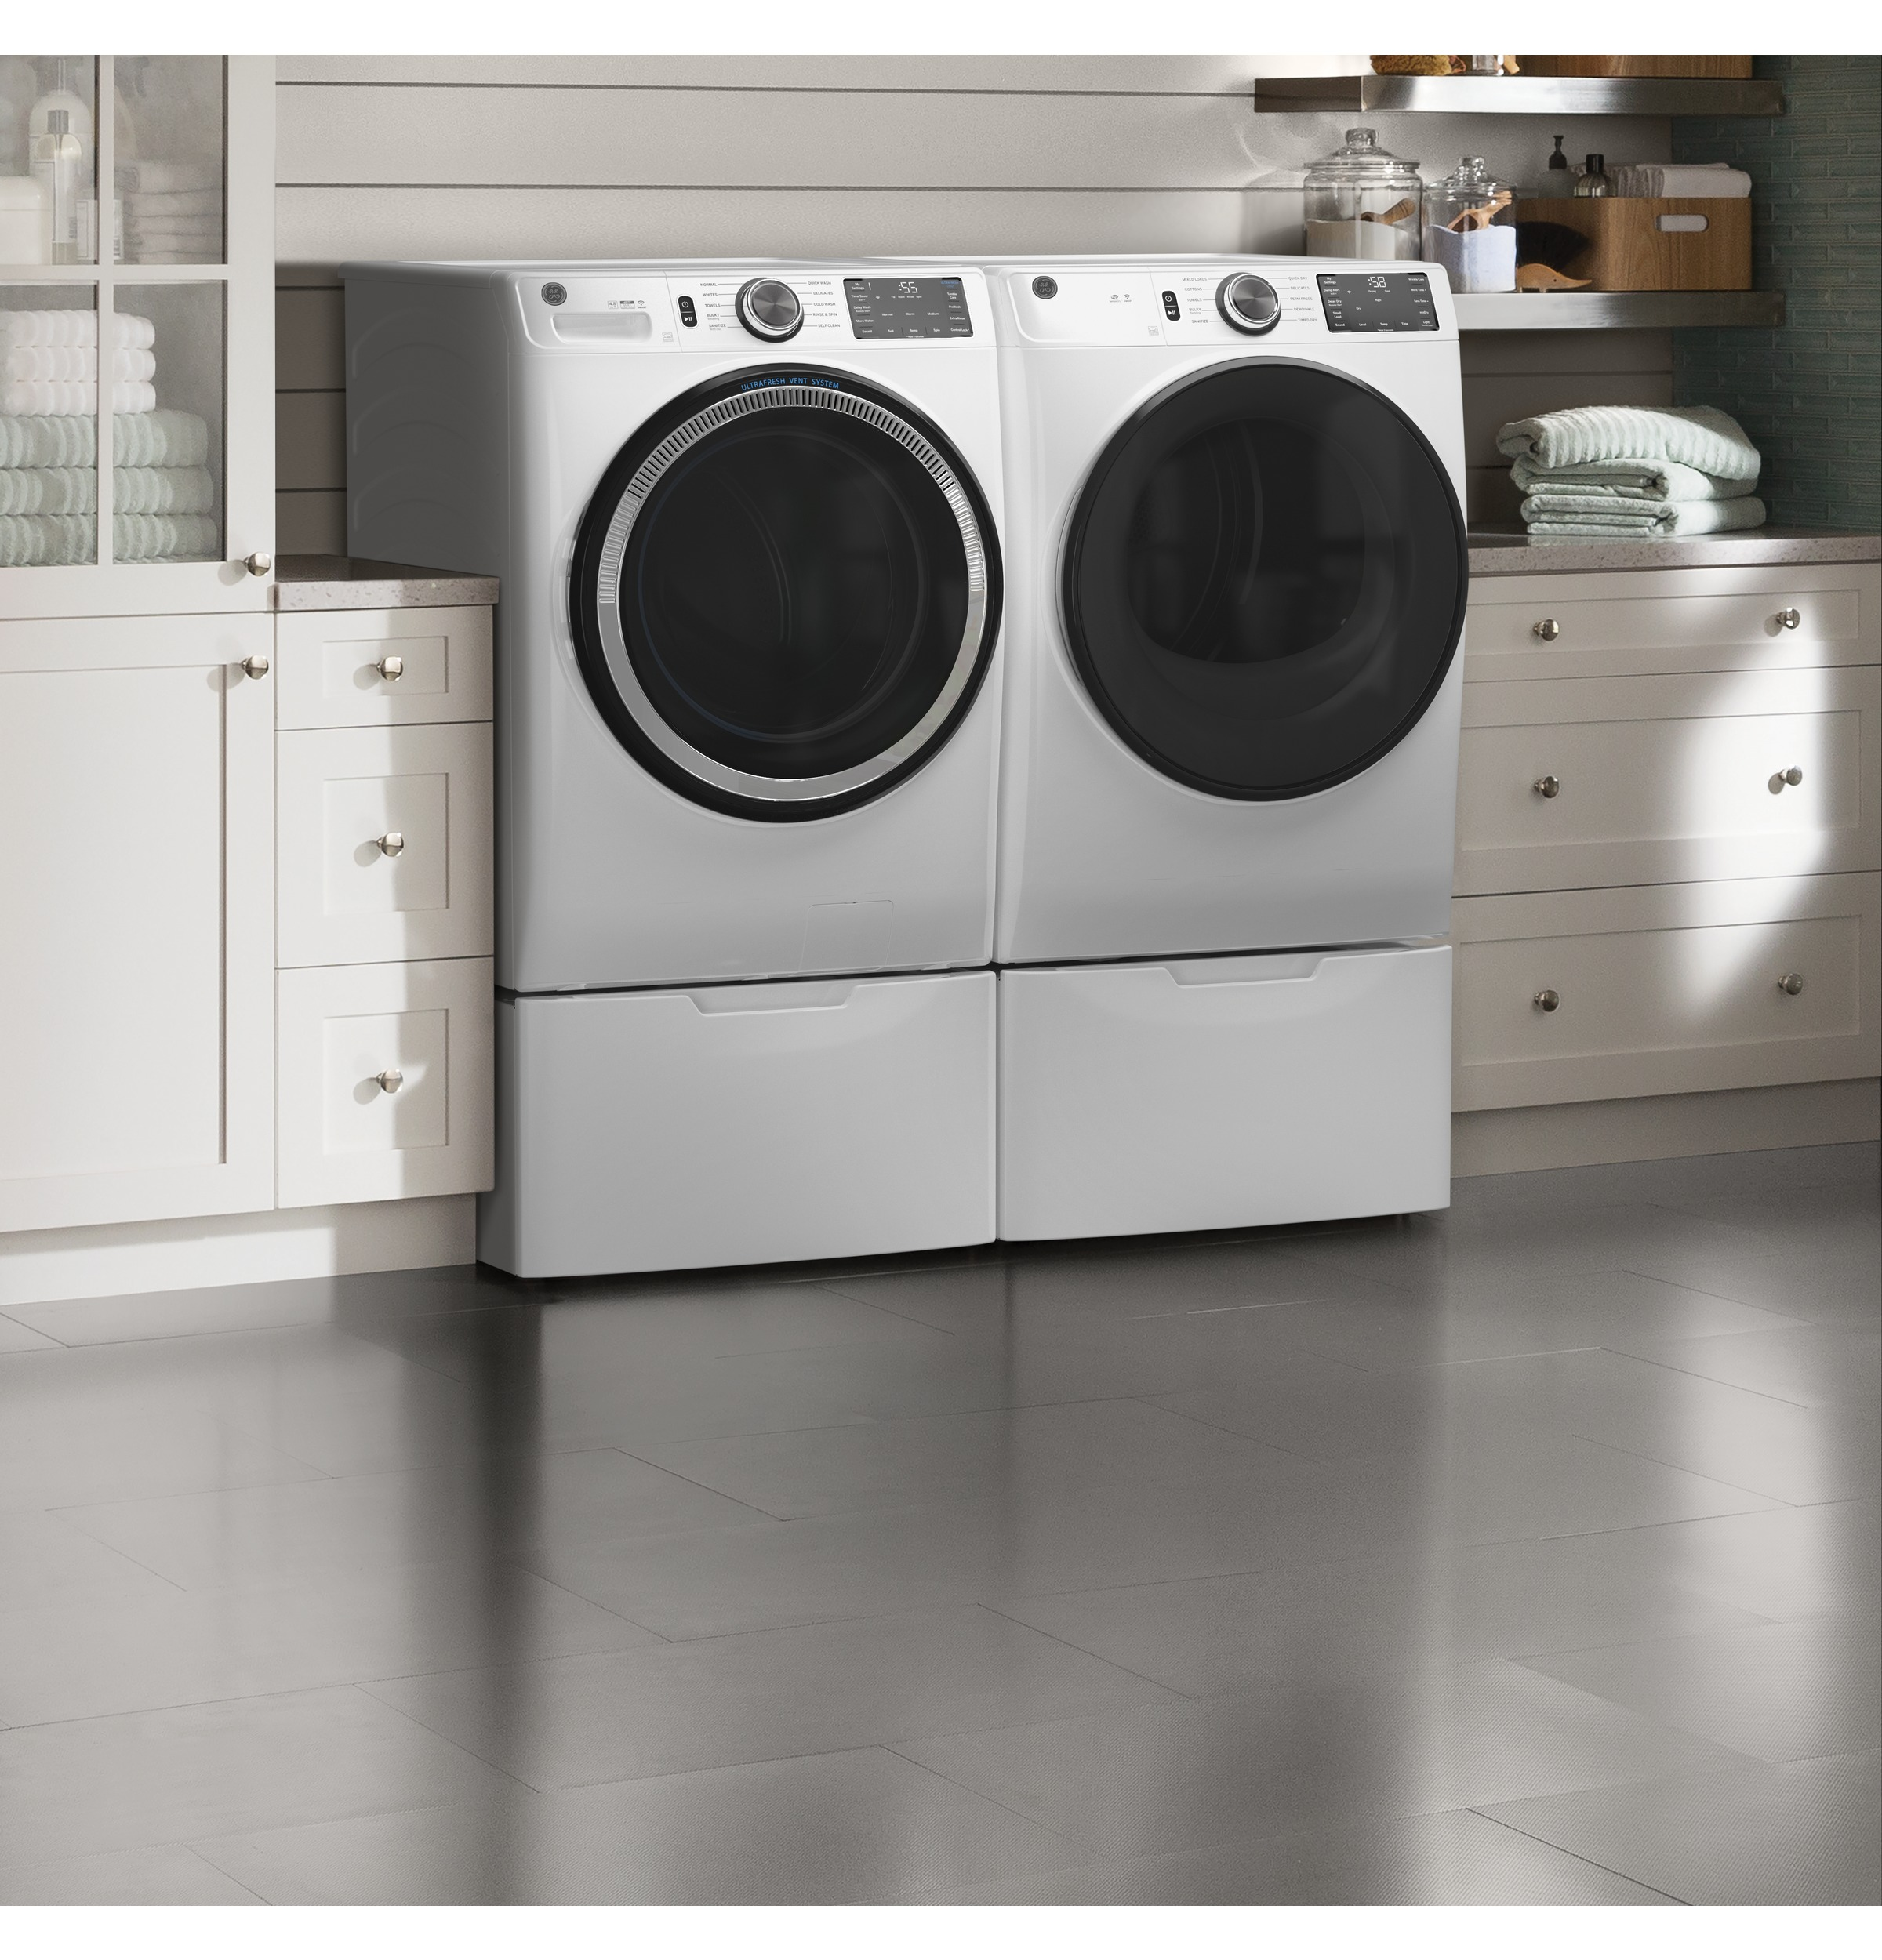 Model: GFD55ESSNWW | GE GE® 7.8 cu. ft. Capacity Smart Front Load Electric Dryer with Sanitize Cycle